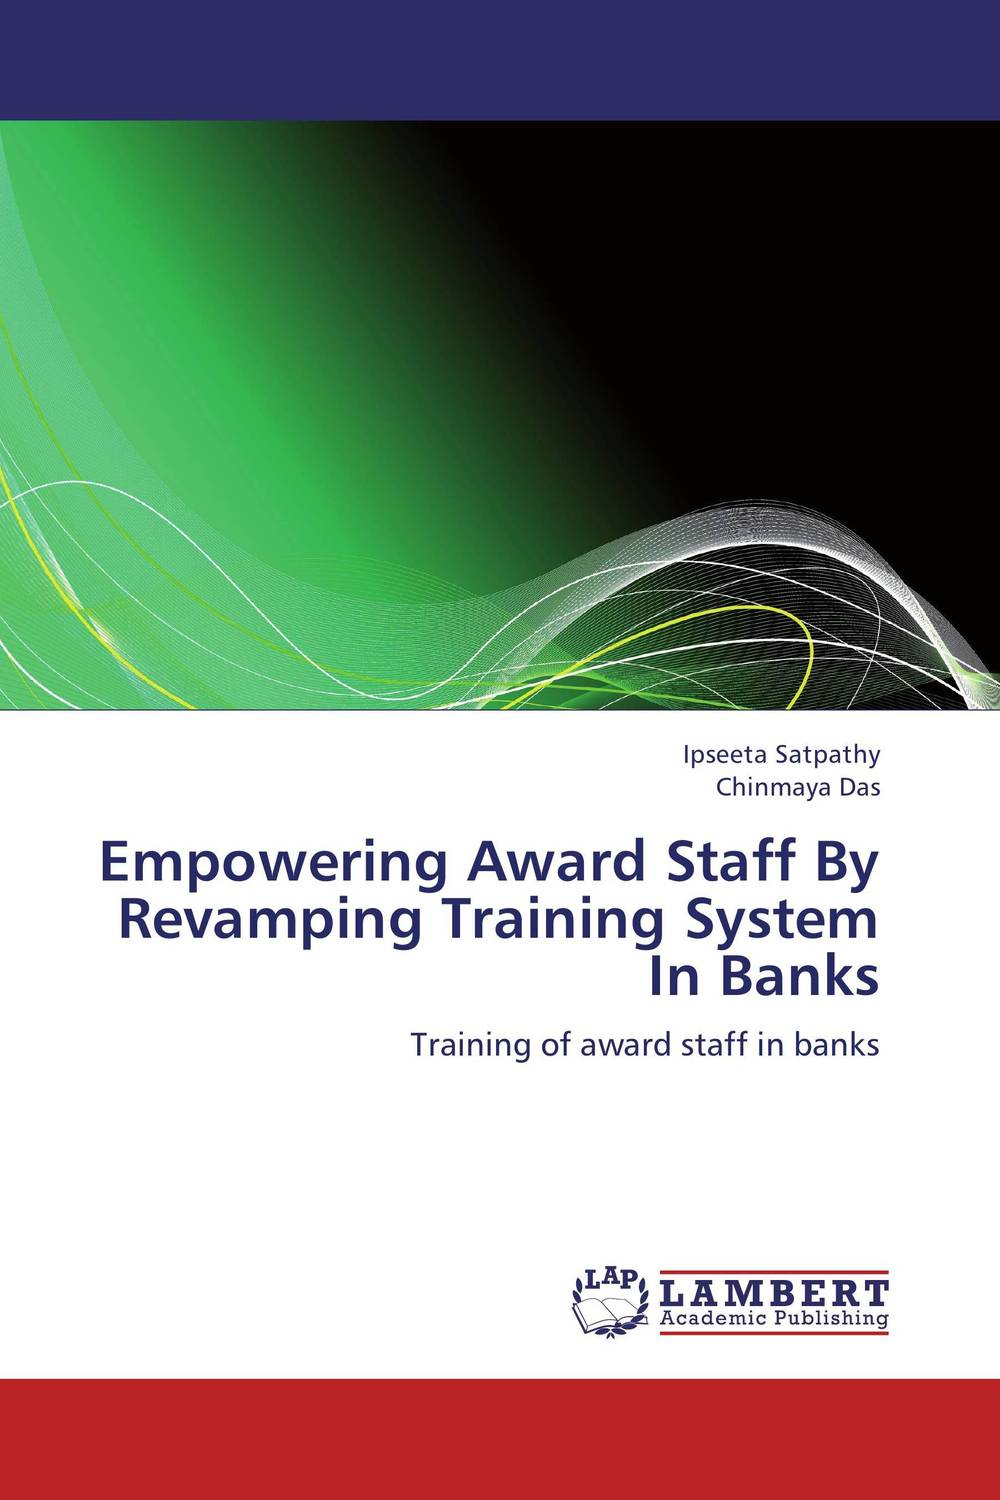 Empowering Award Staff By Revamping Training System In Banks jill anne o sullivan validating academic training versus industry training using erp